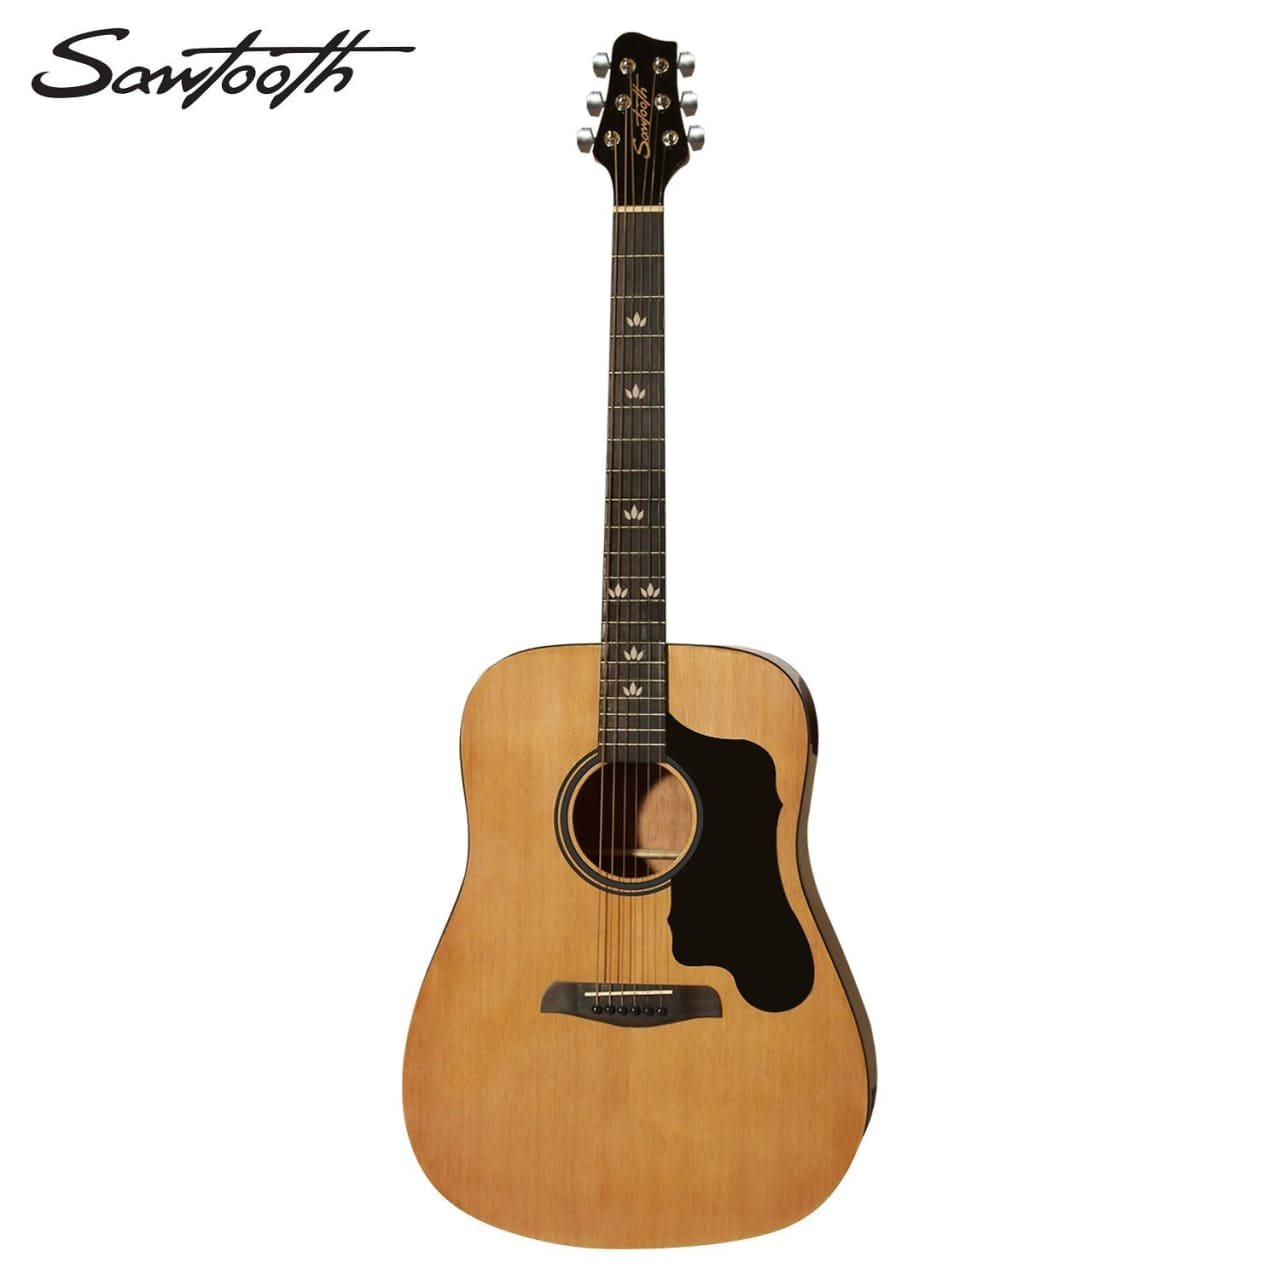 sawtooth acoustic dreadnought guitar with custom shape black reverb. Black Bedroom Furniture Sets. Home Design Ideas